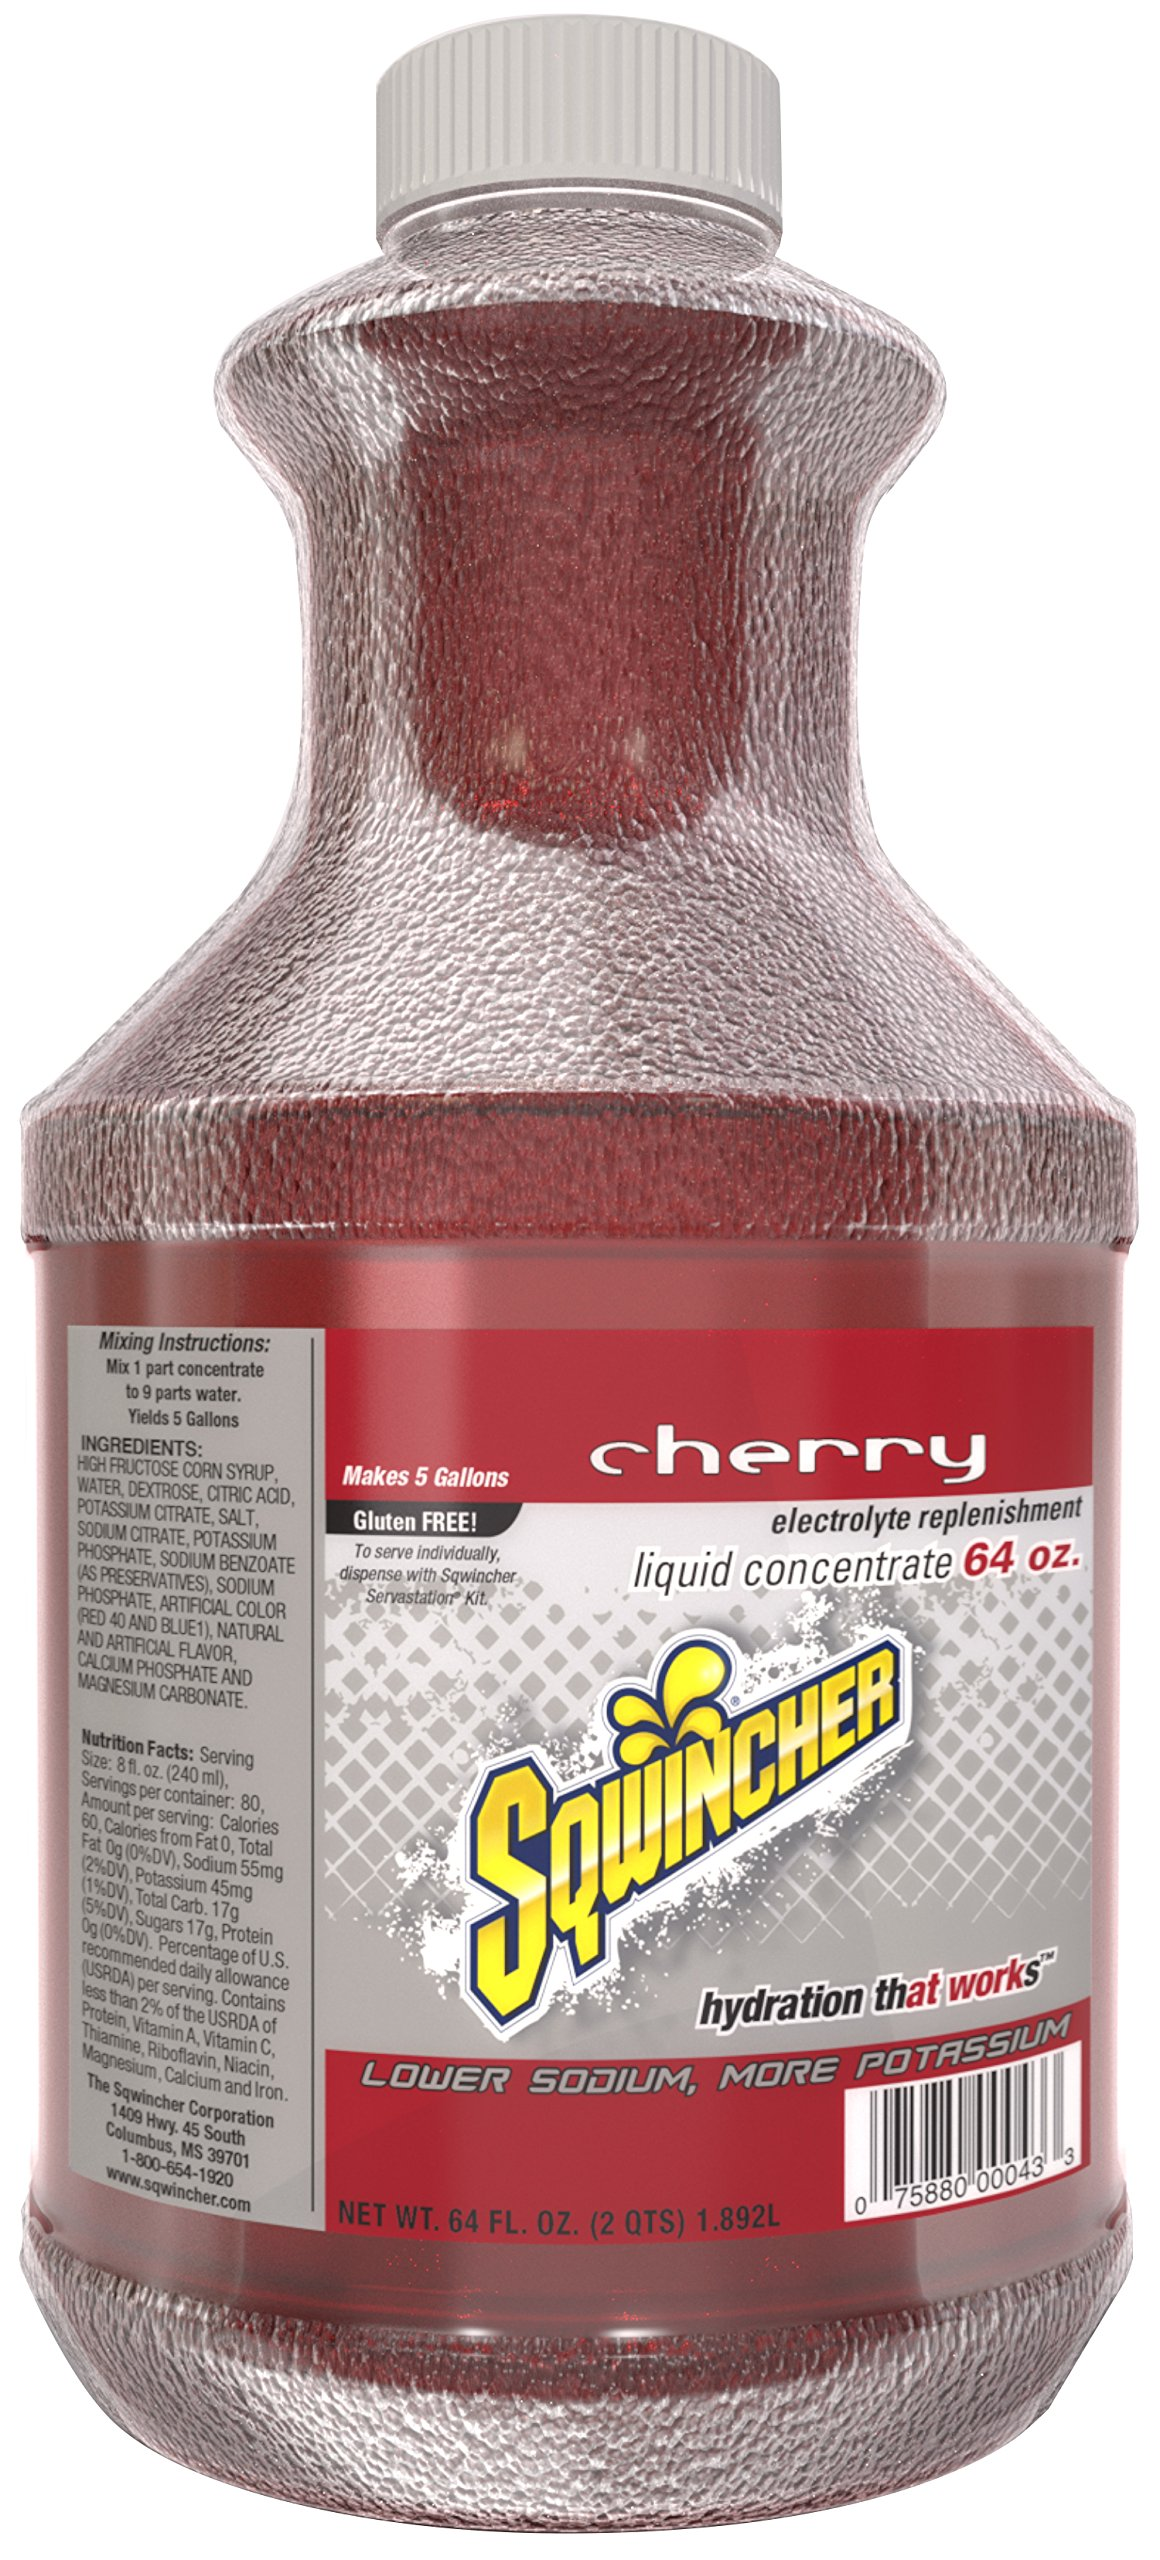 Sqwincher Liquid Concentrate Electrolyte Replacement, 5 Gallon Yield, Cherry 030321-CH (Pack of 6) by Sqwincher